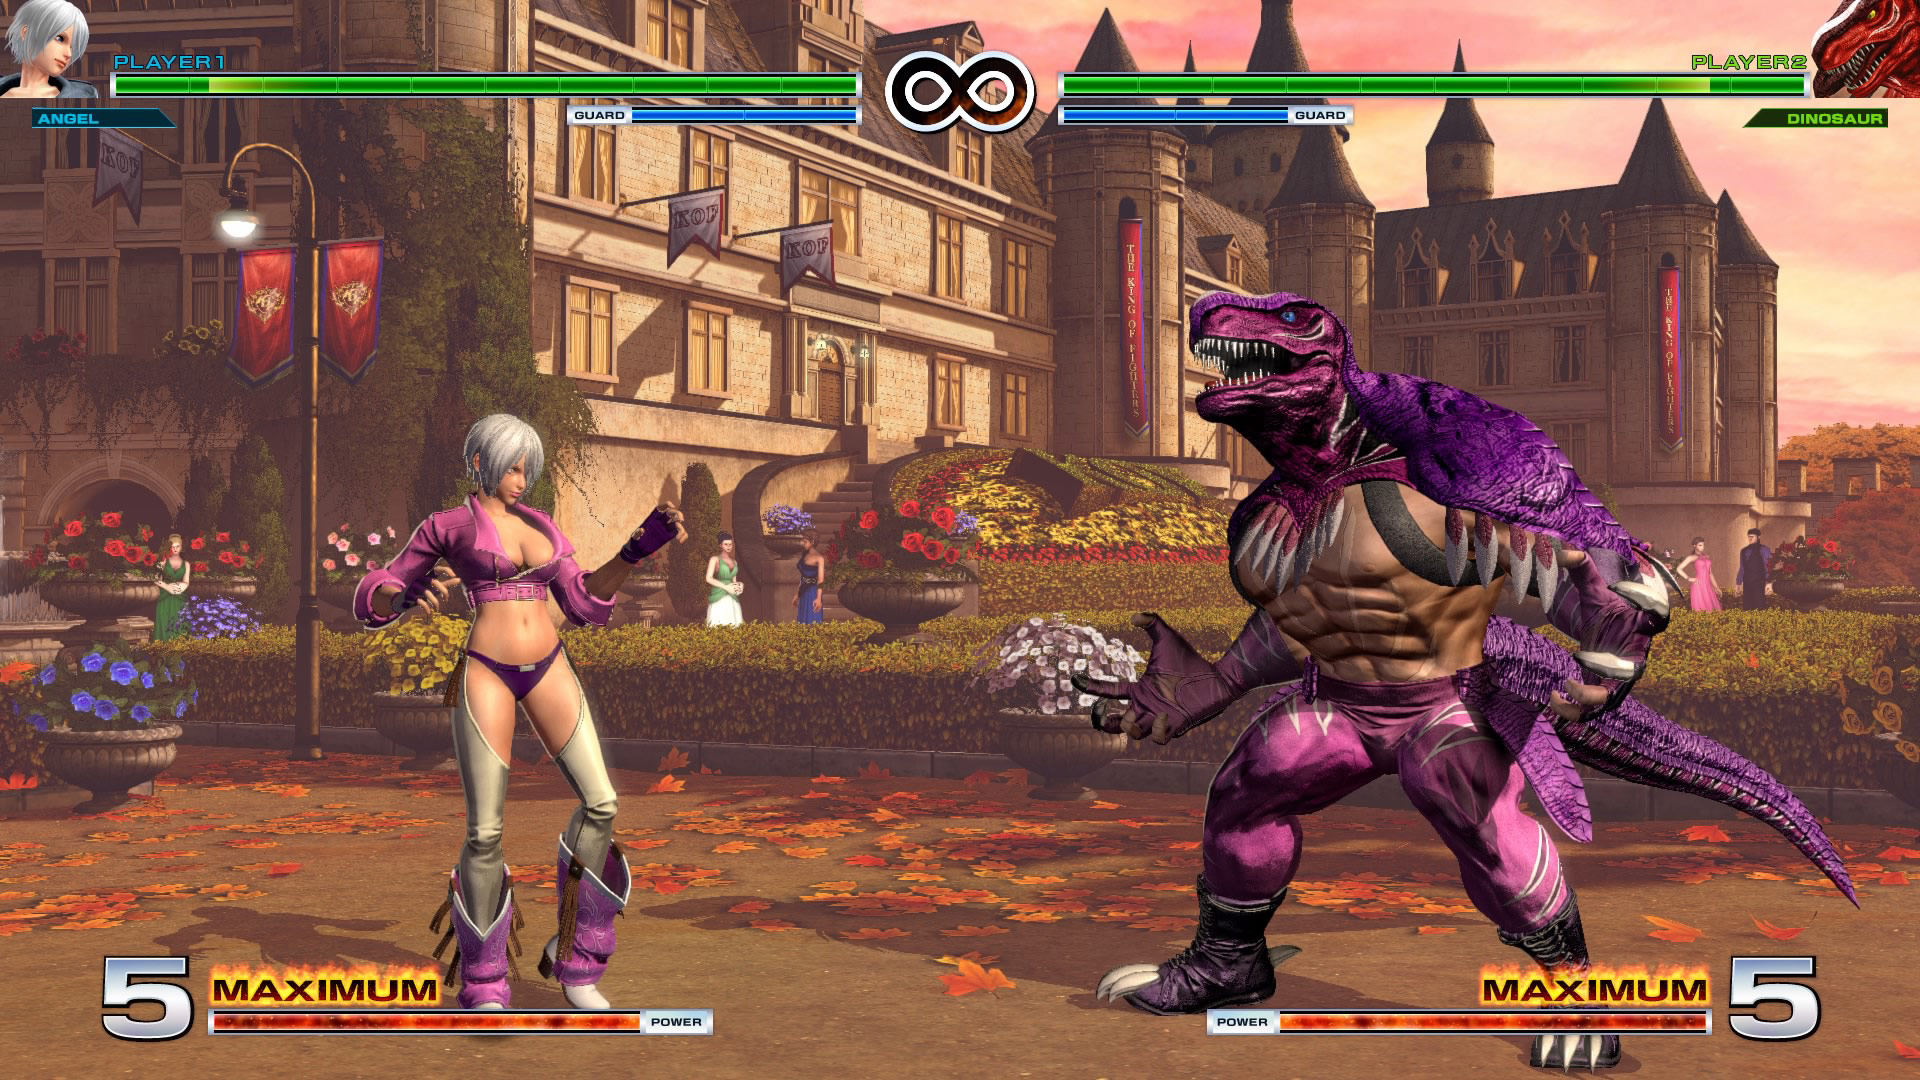 King of Fighters 14 1.10 graphics update 14 out of 60 image gallery